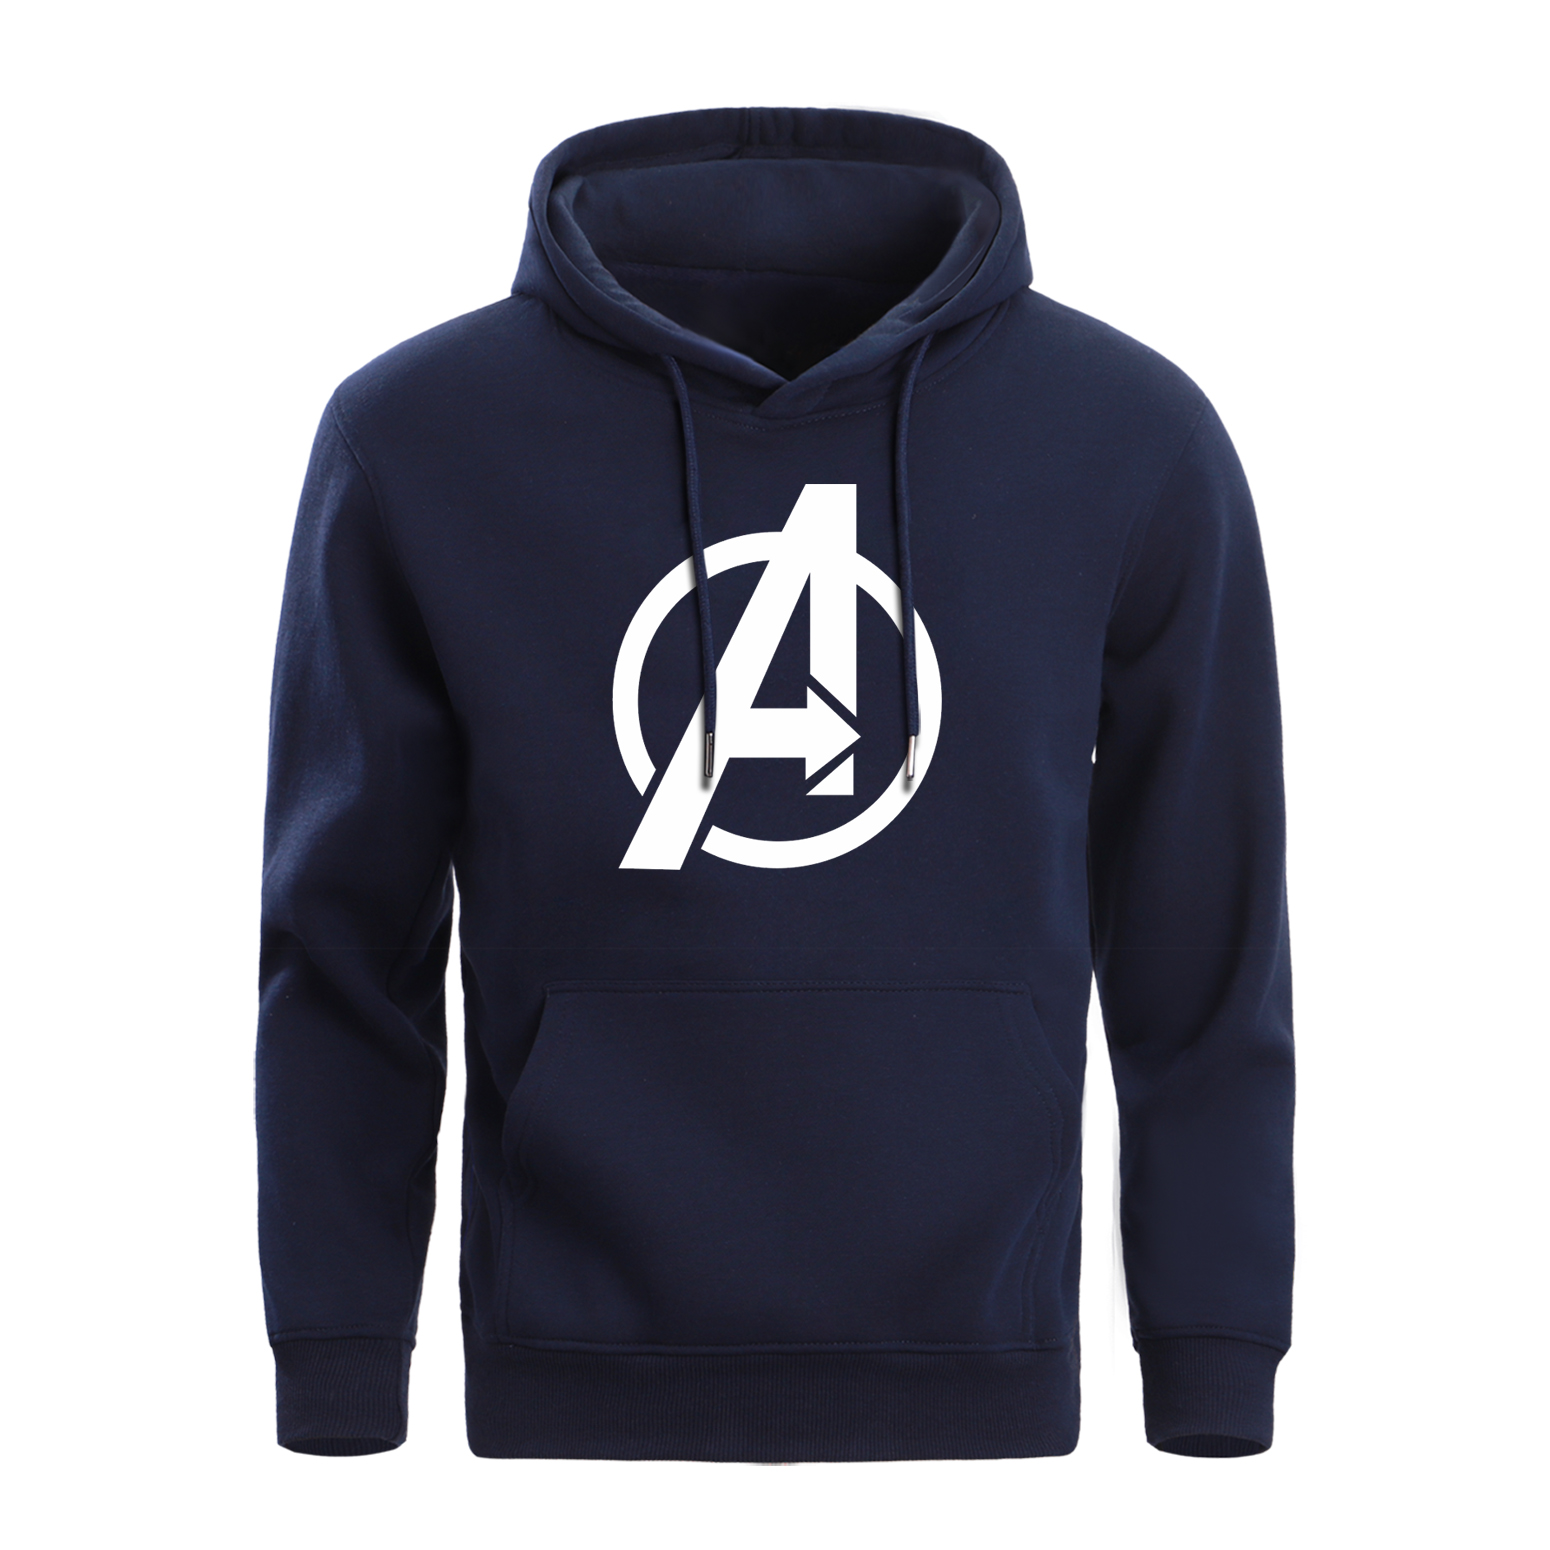 Men Avengers Hoodies Crewneck Marvel Hoodie Winter Fleece Warm Super Hero Sweatshirt Mens Pullover Hoody Sportswear Sweatshirts